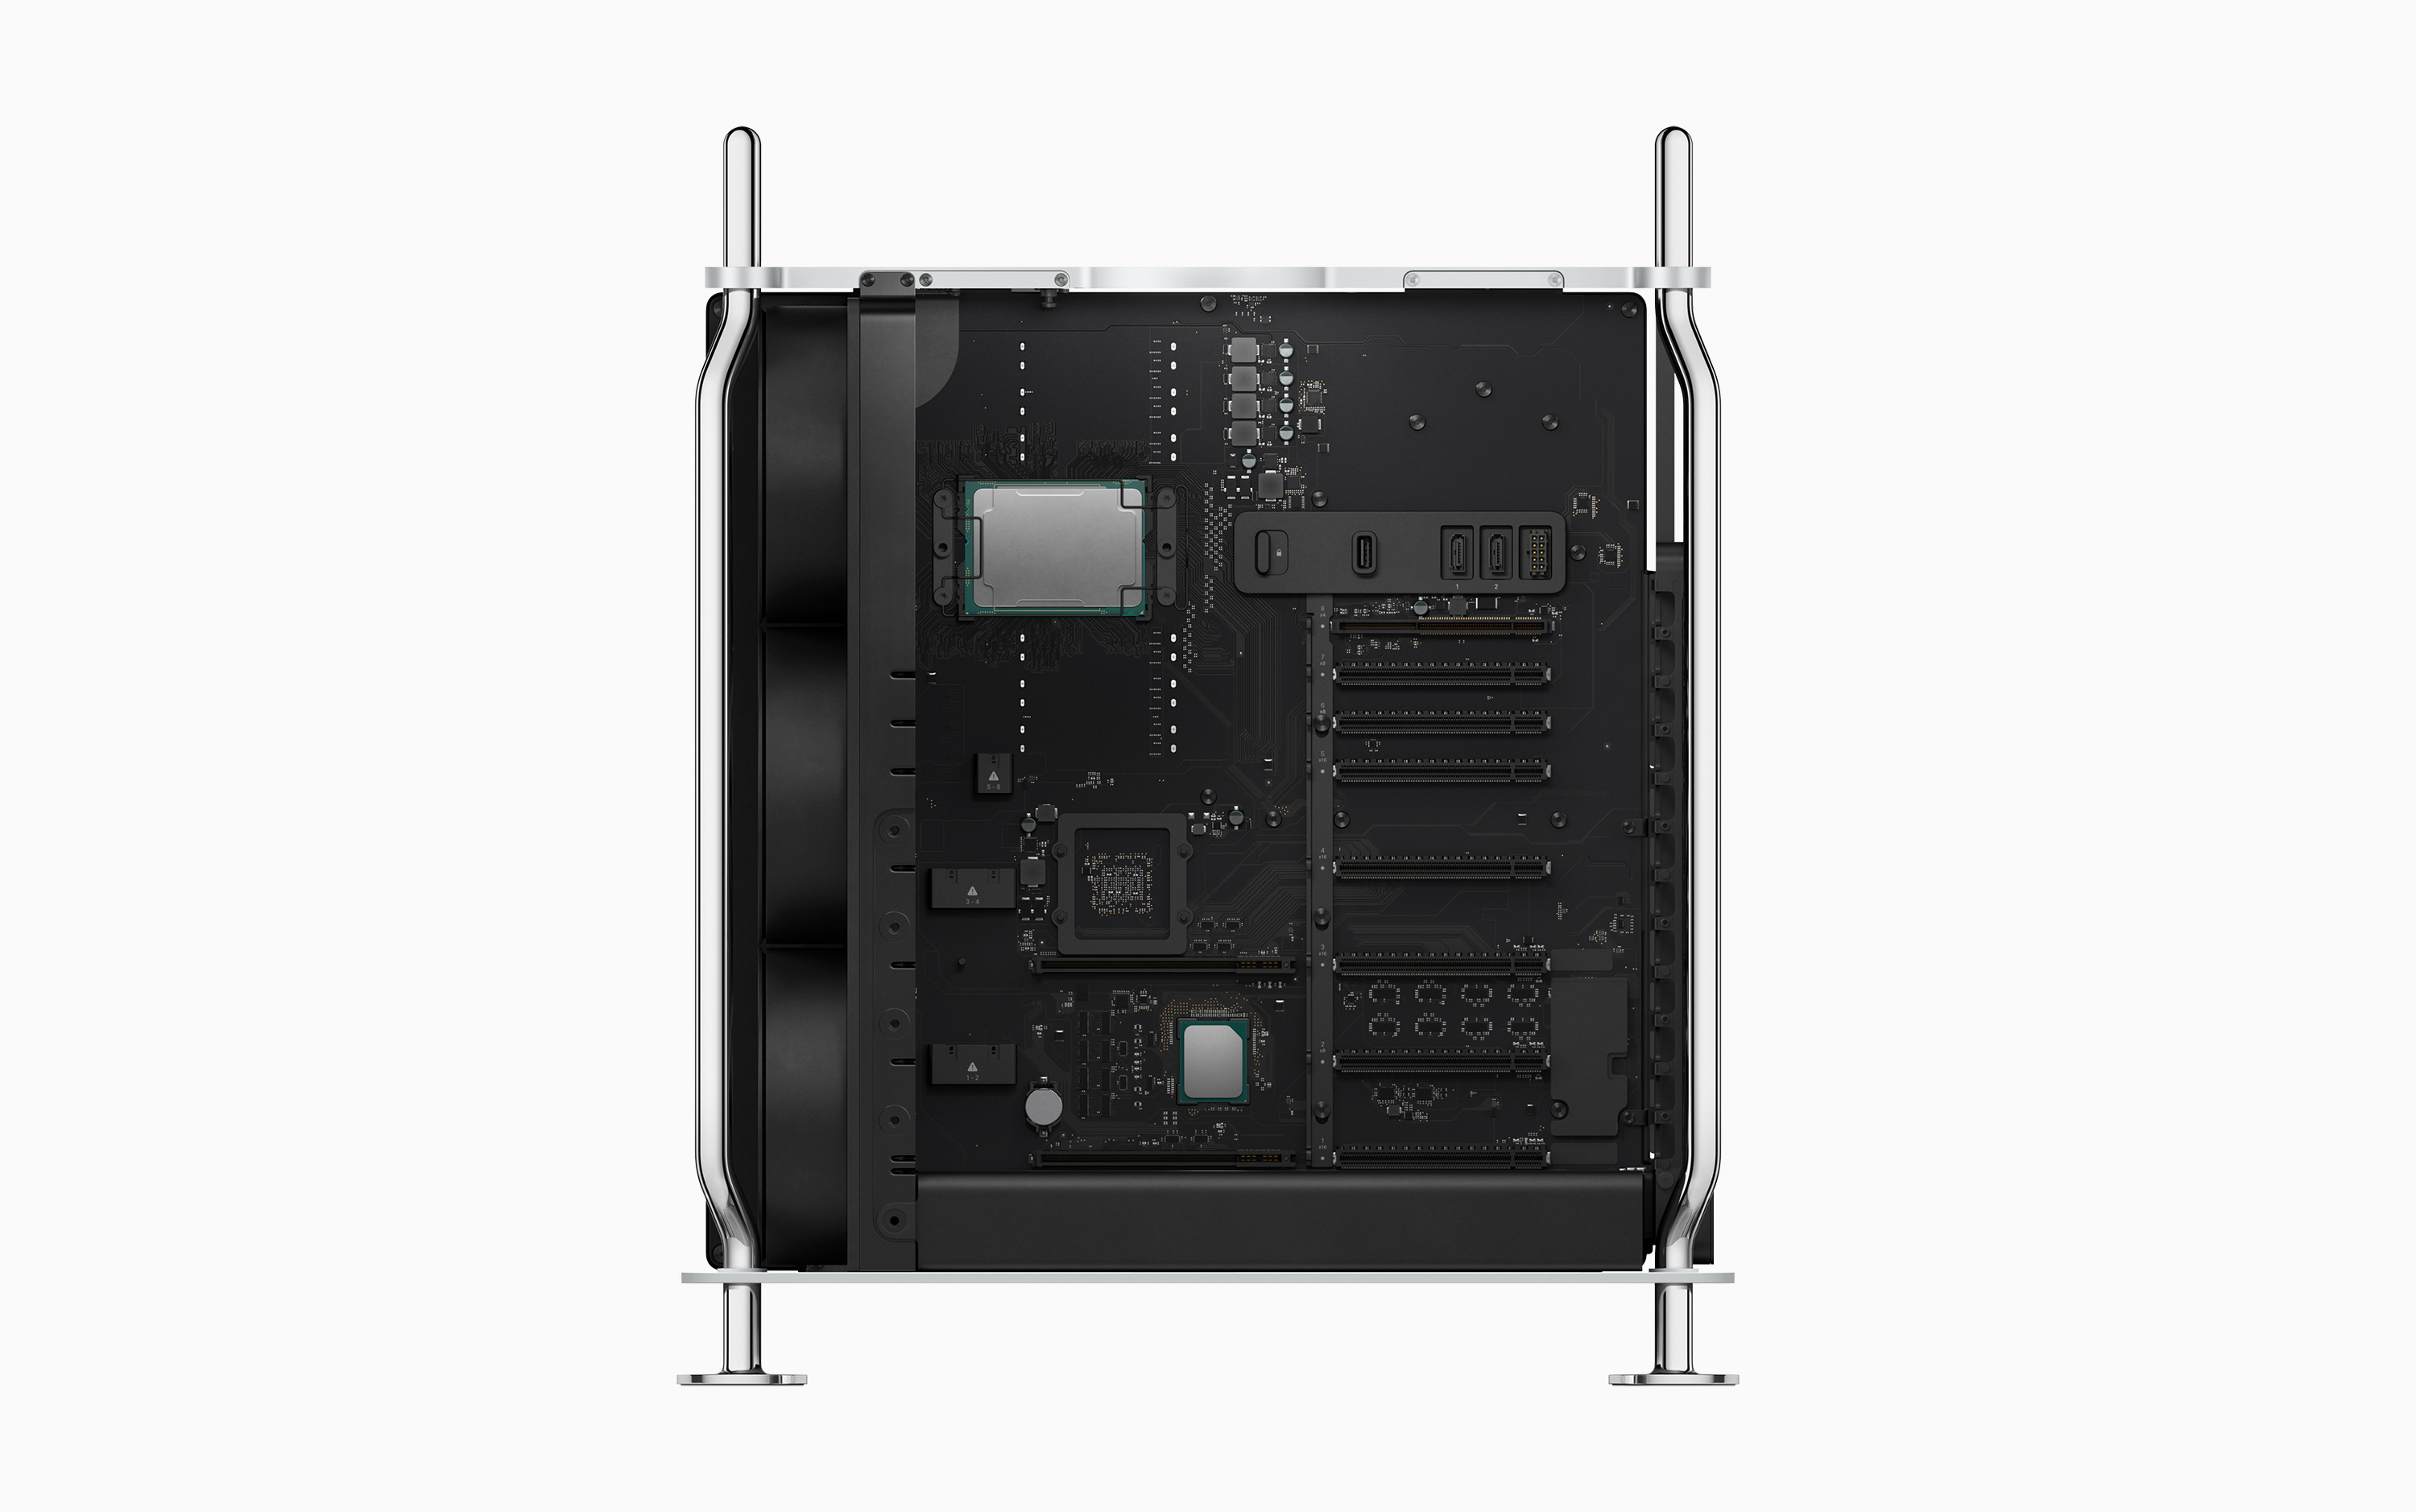 A look inside the new Mac Pro.